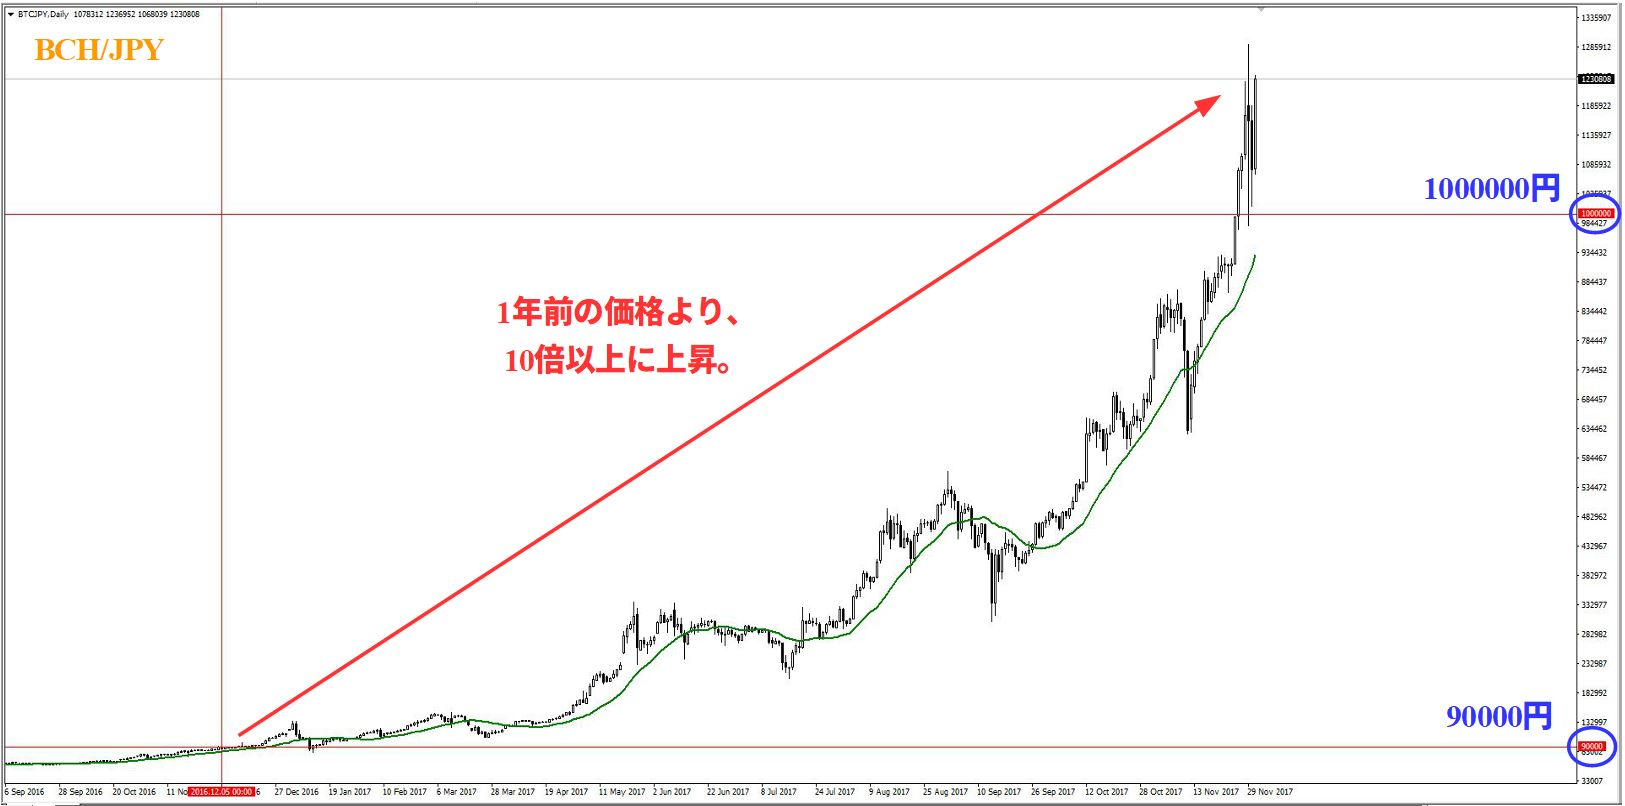 BCH/JPY, Daily